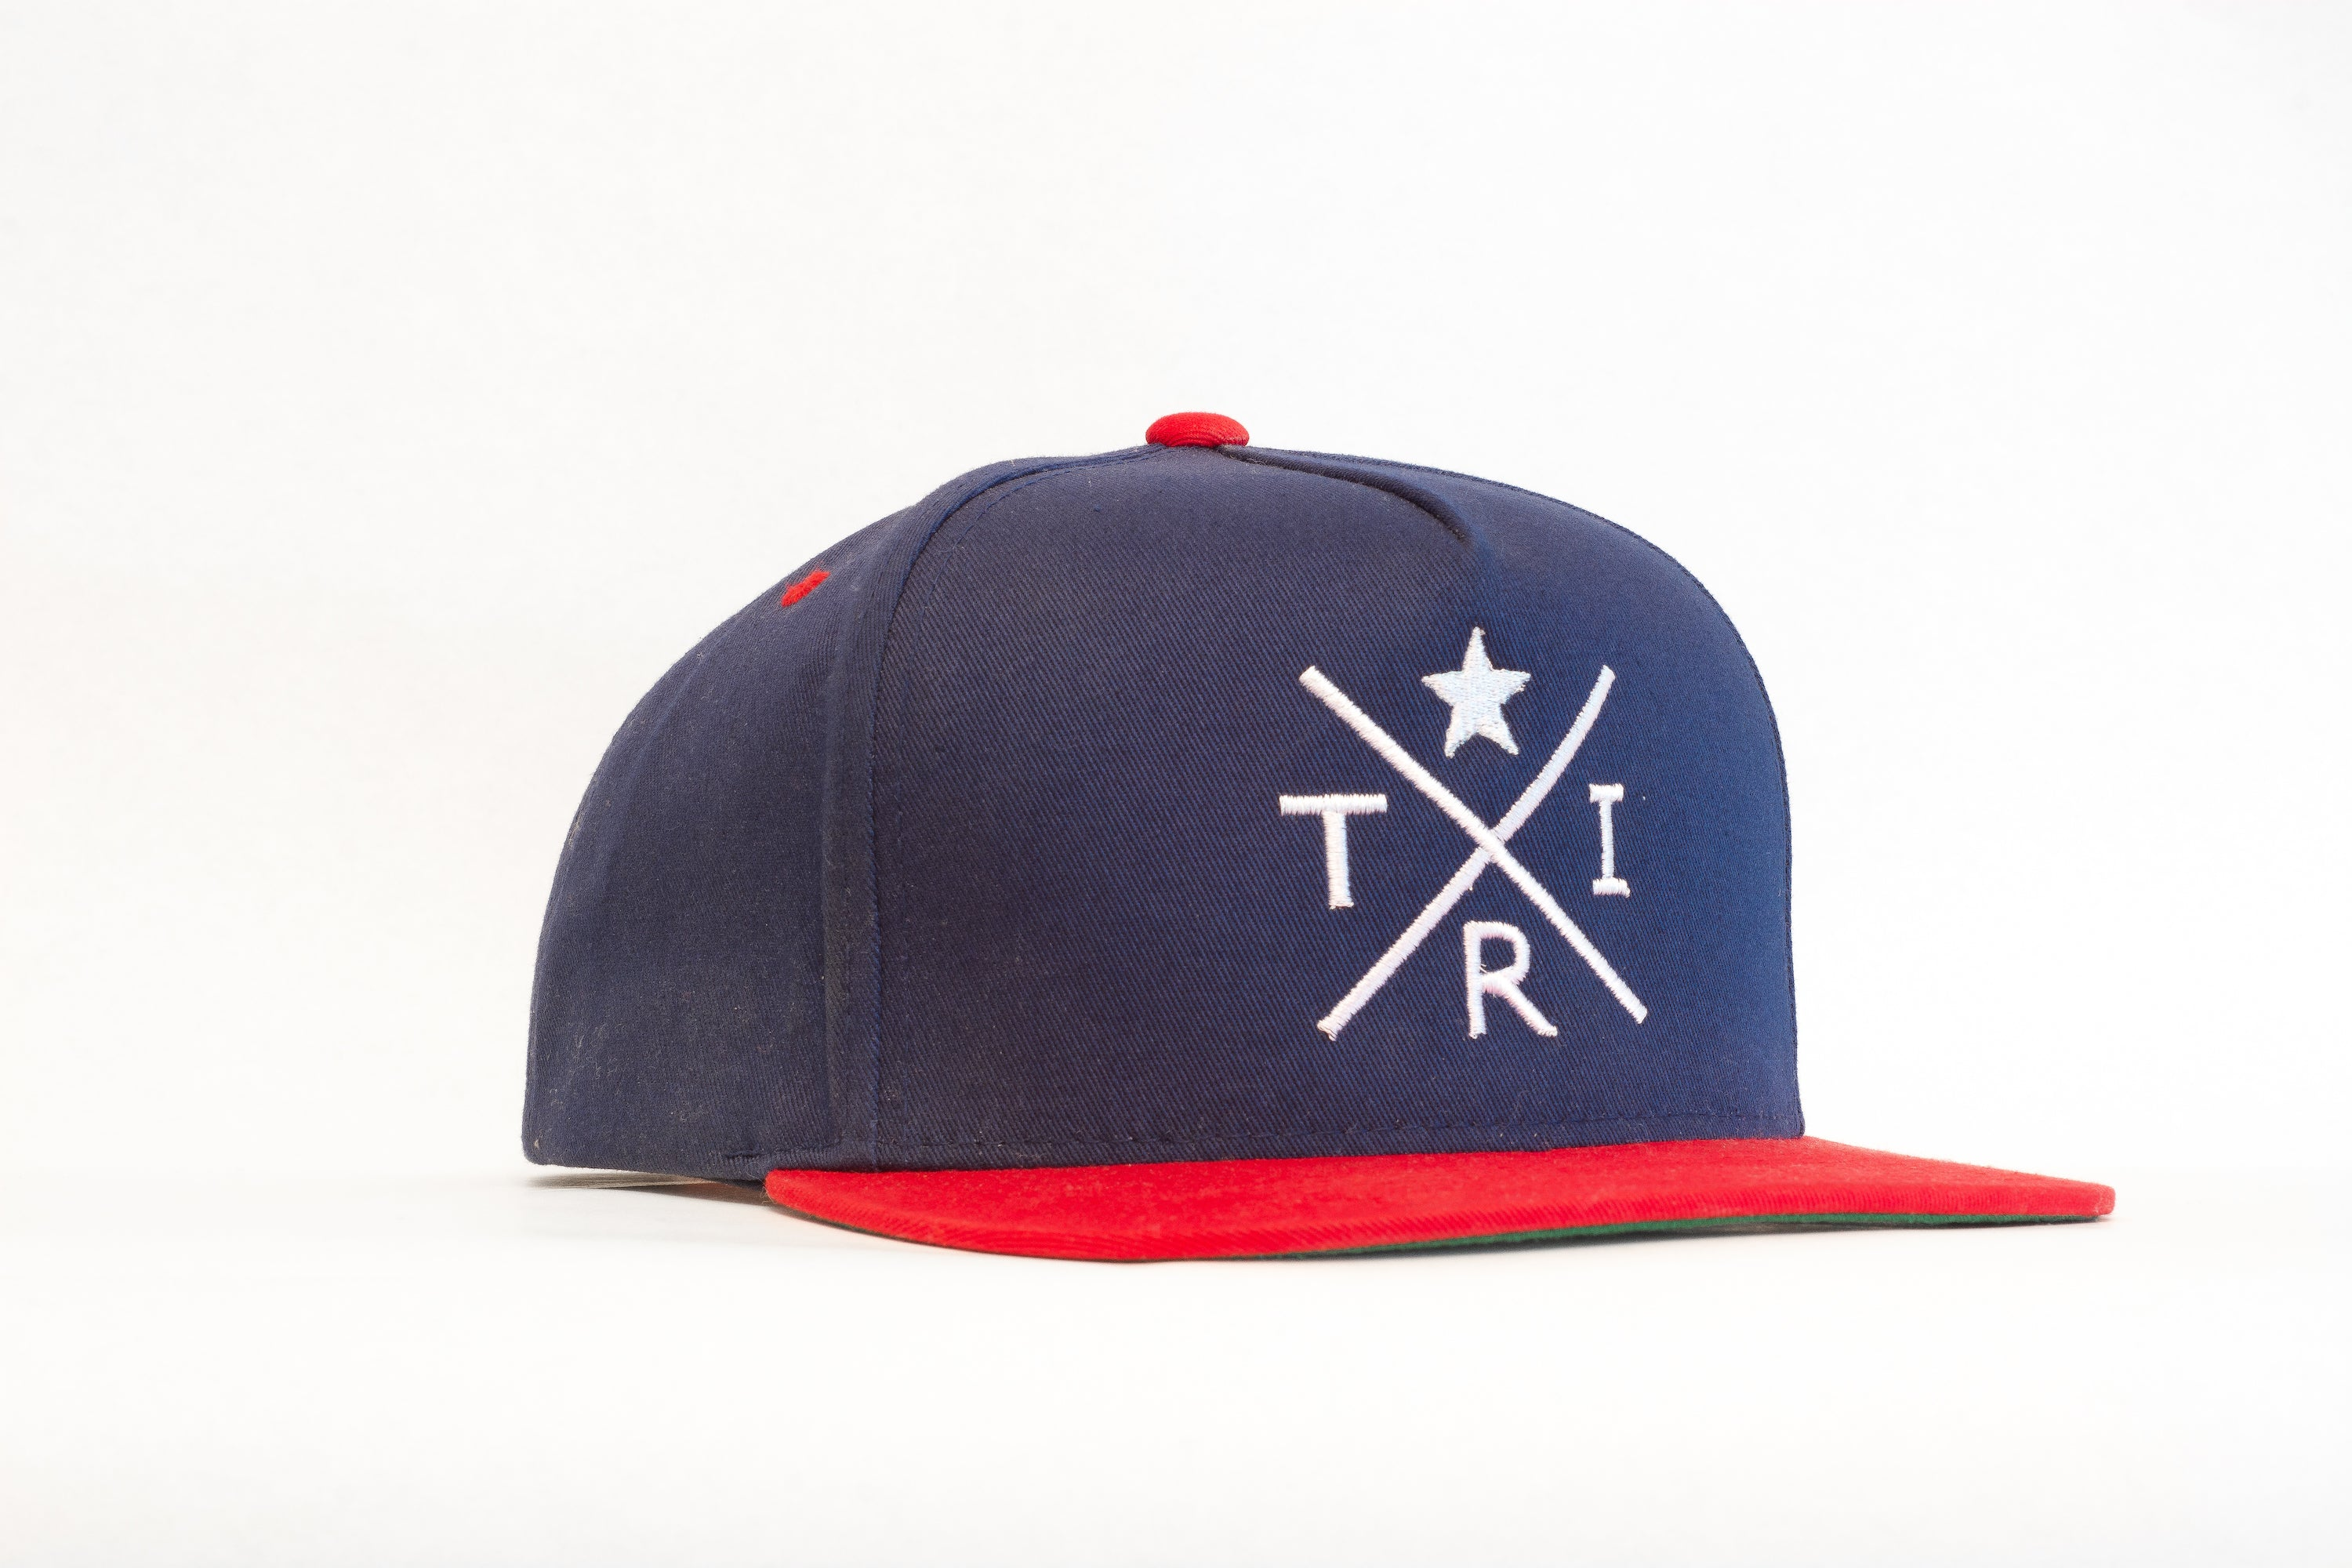 X Star Blue/Red flatbill(snapback)